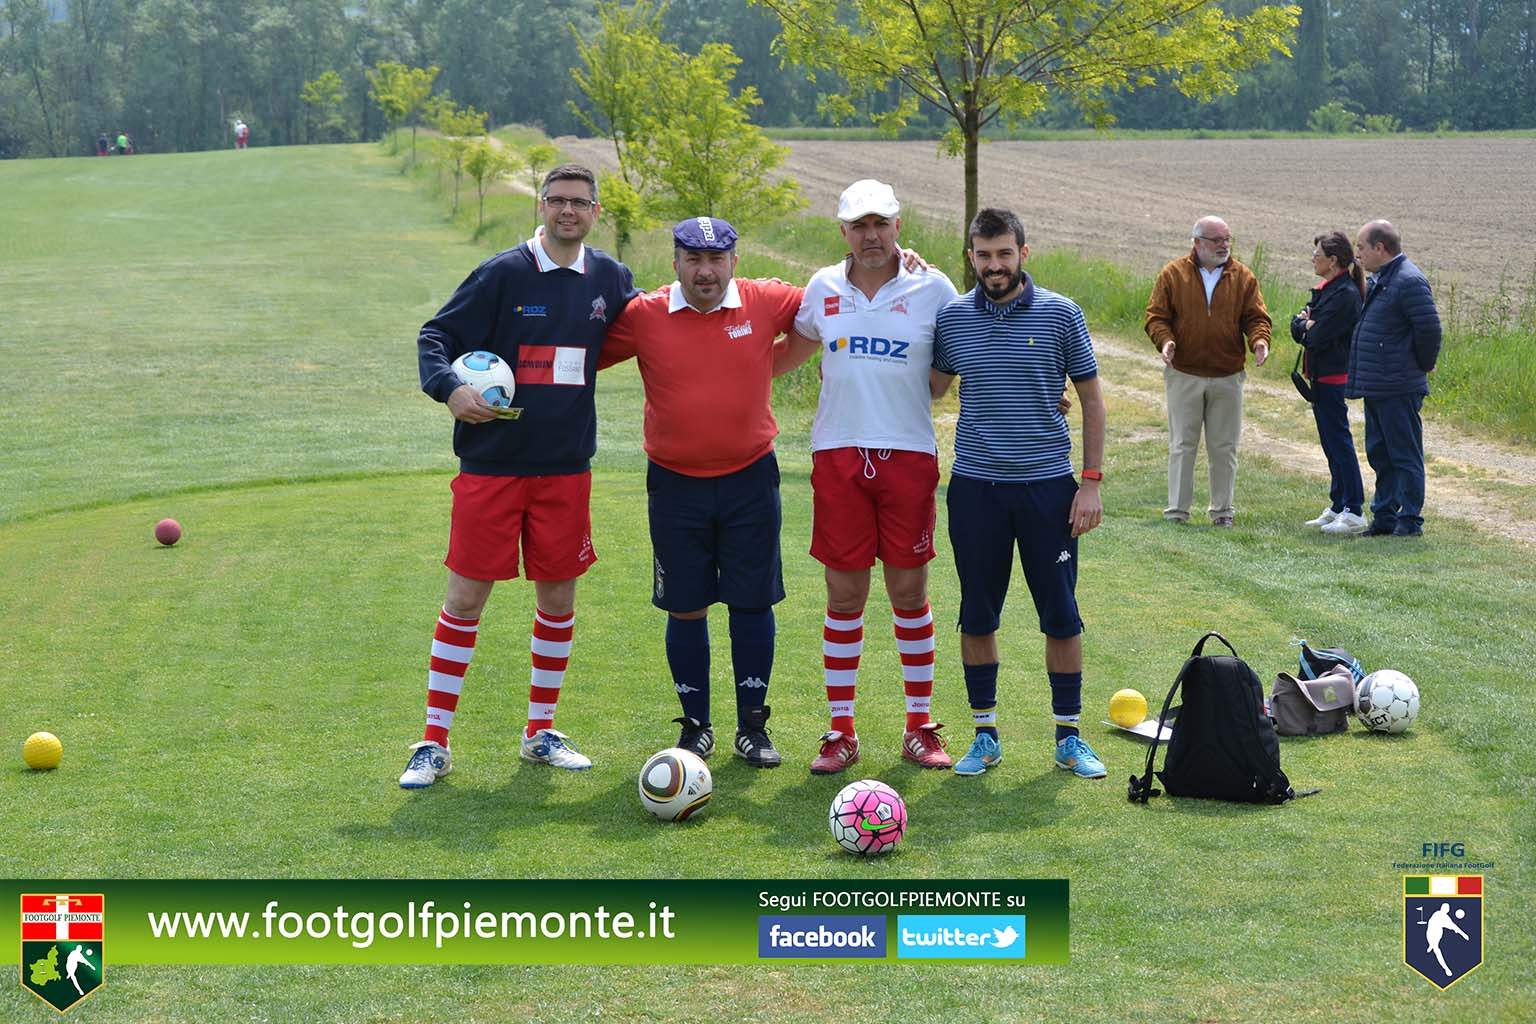 FOTO 9 Regions' Cup Footgolf Piemonte 2016 Golf Città di Asti (At) 30apr16-26